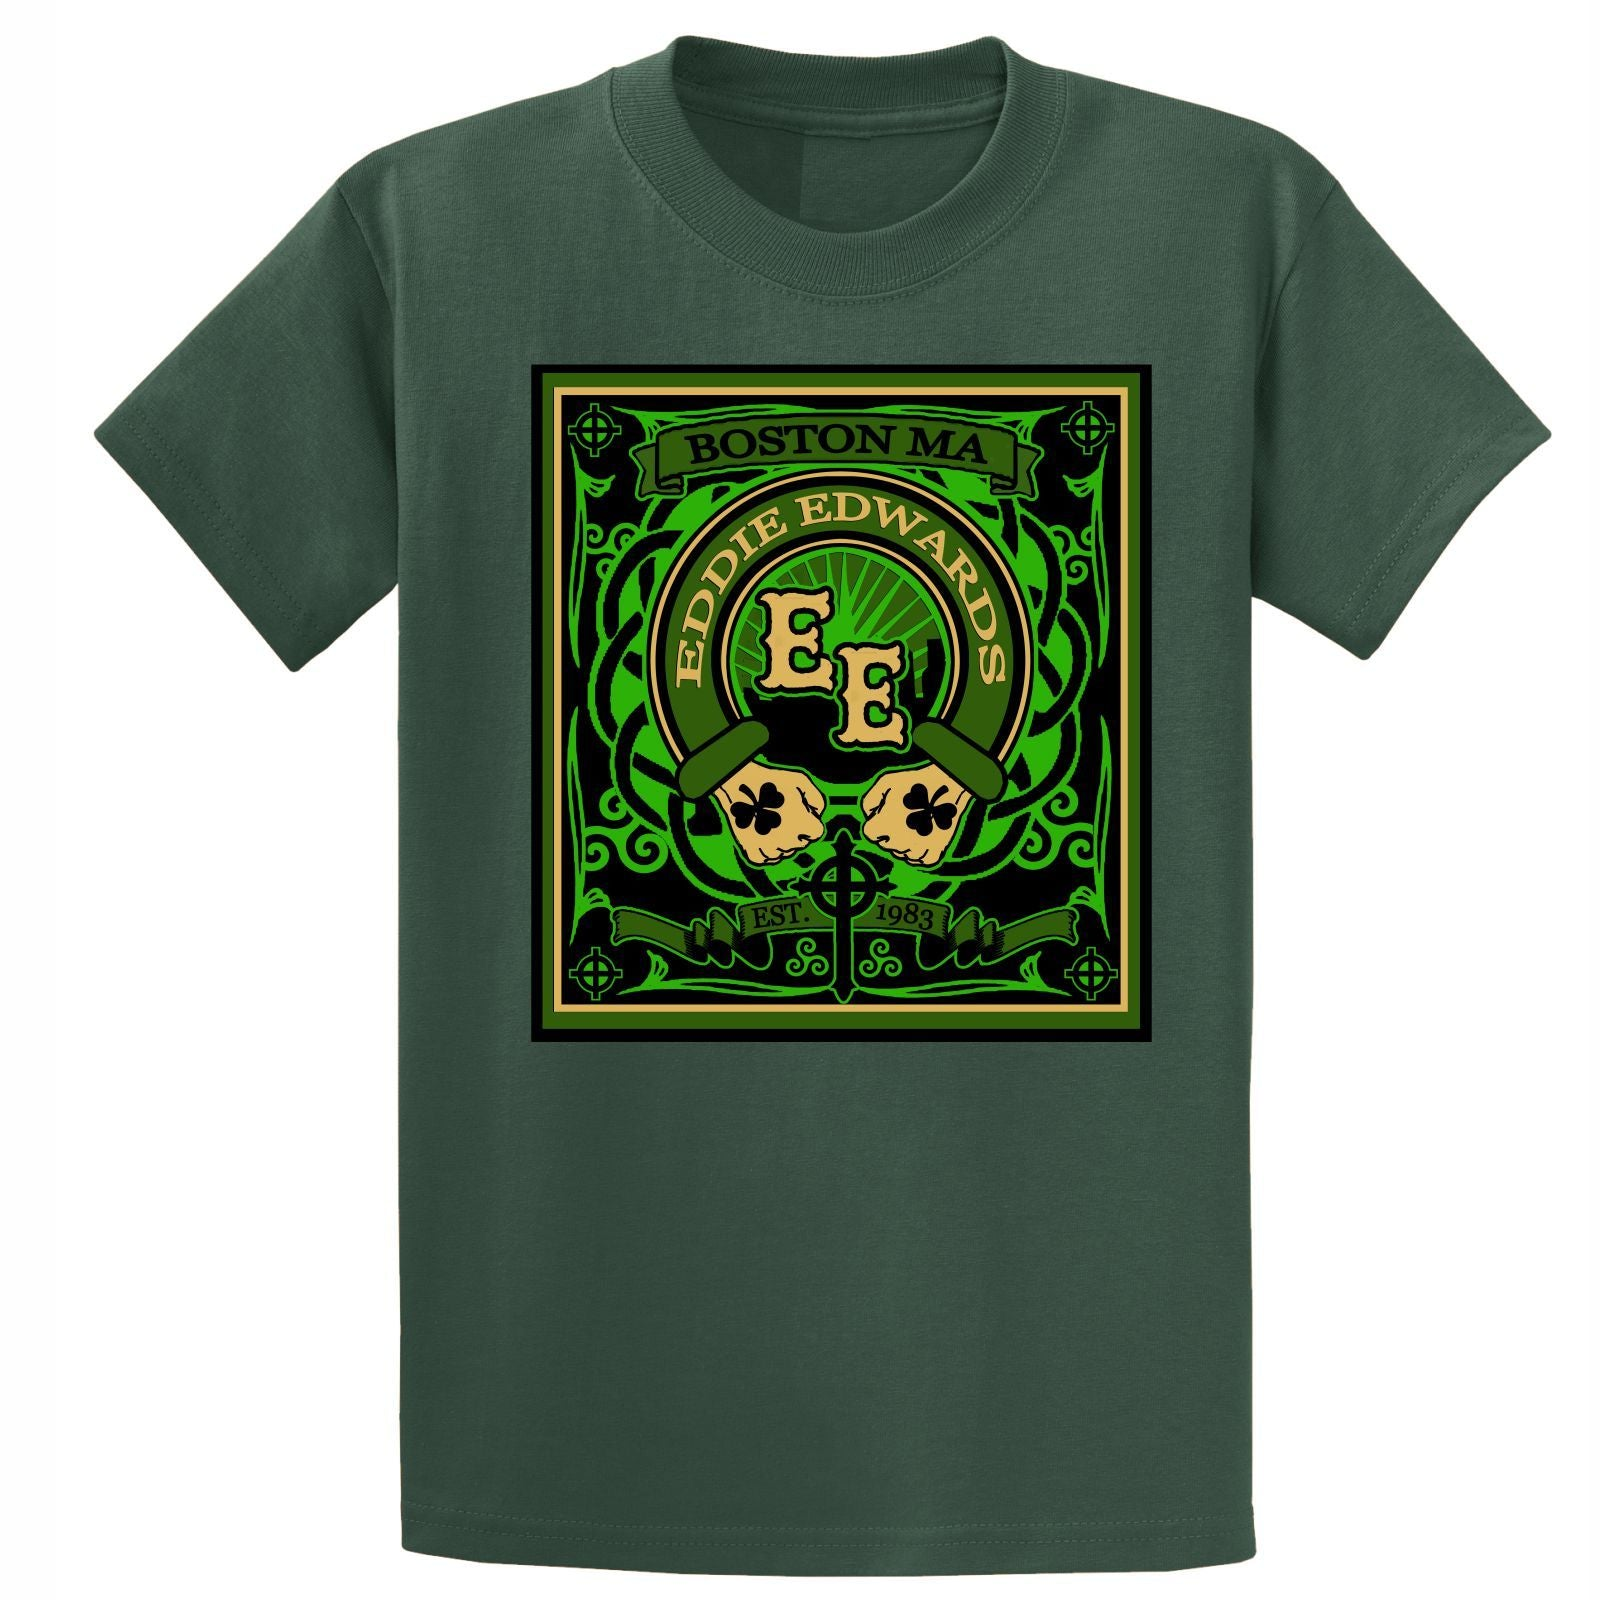 Eddie Edwards SS Tee - Men's